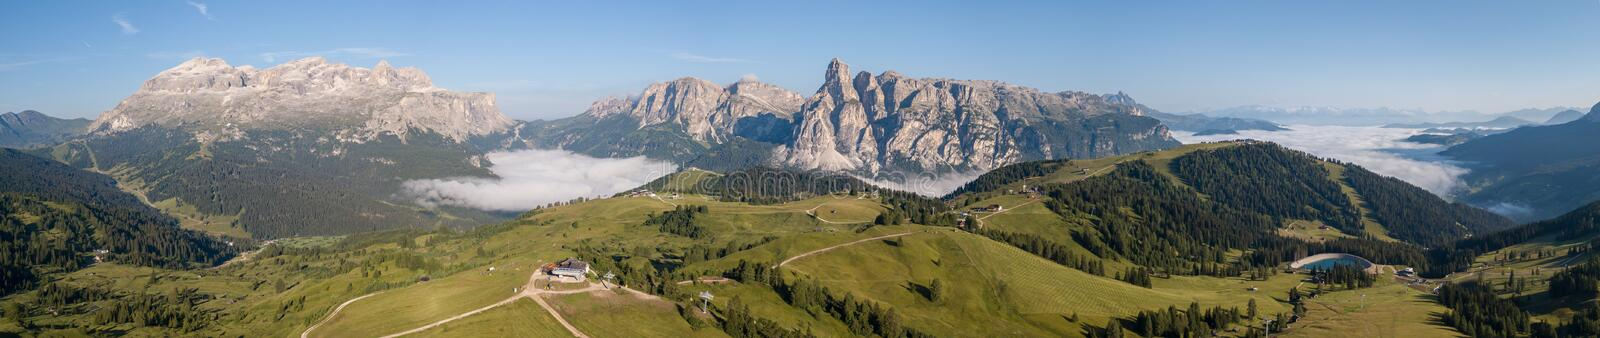 Dolomites, Italy. Amazing drone aerial landscape at Sella and Gardenaccia massifs. Fog at the bottom of the valley stock photography